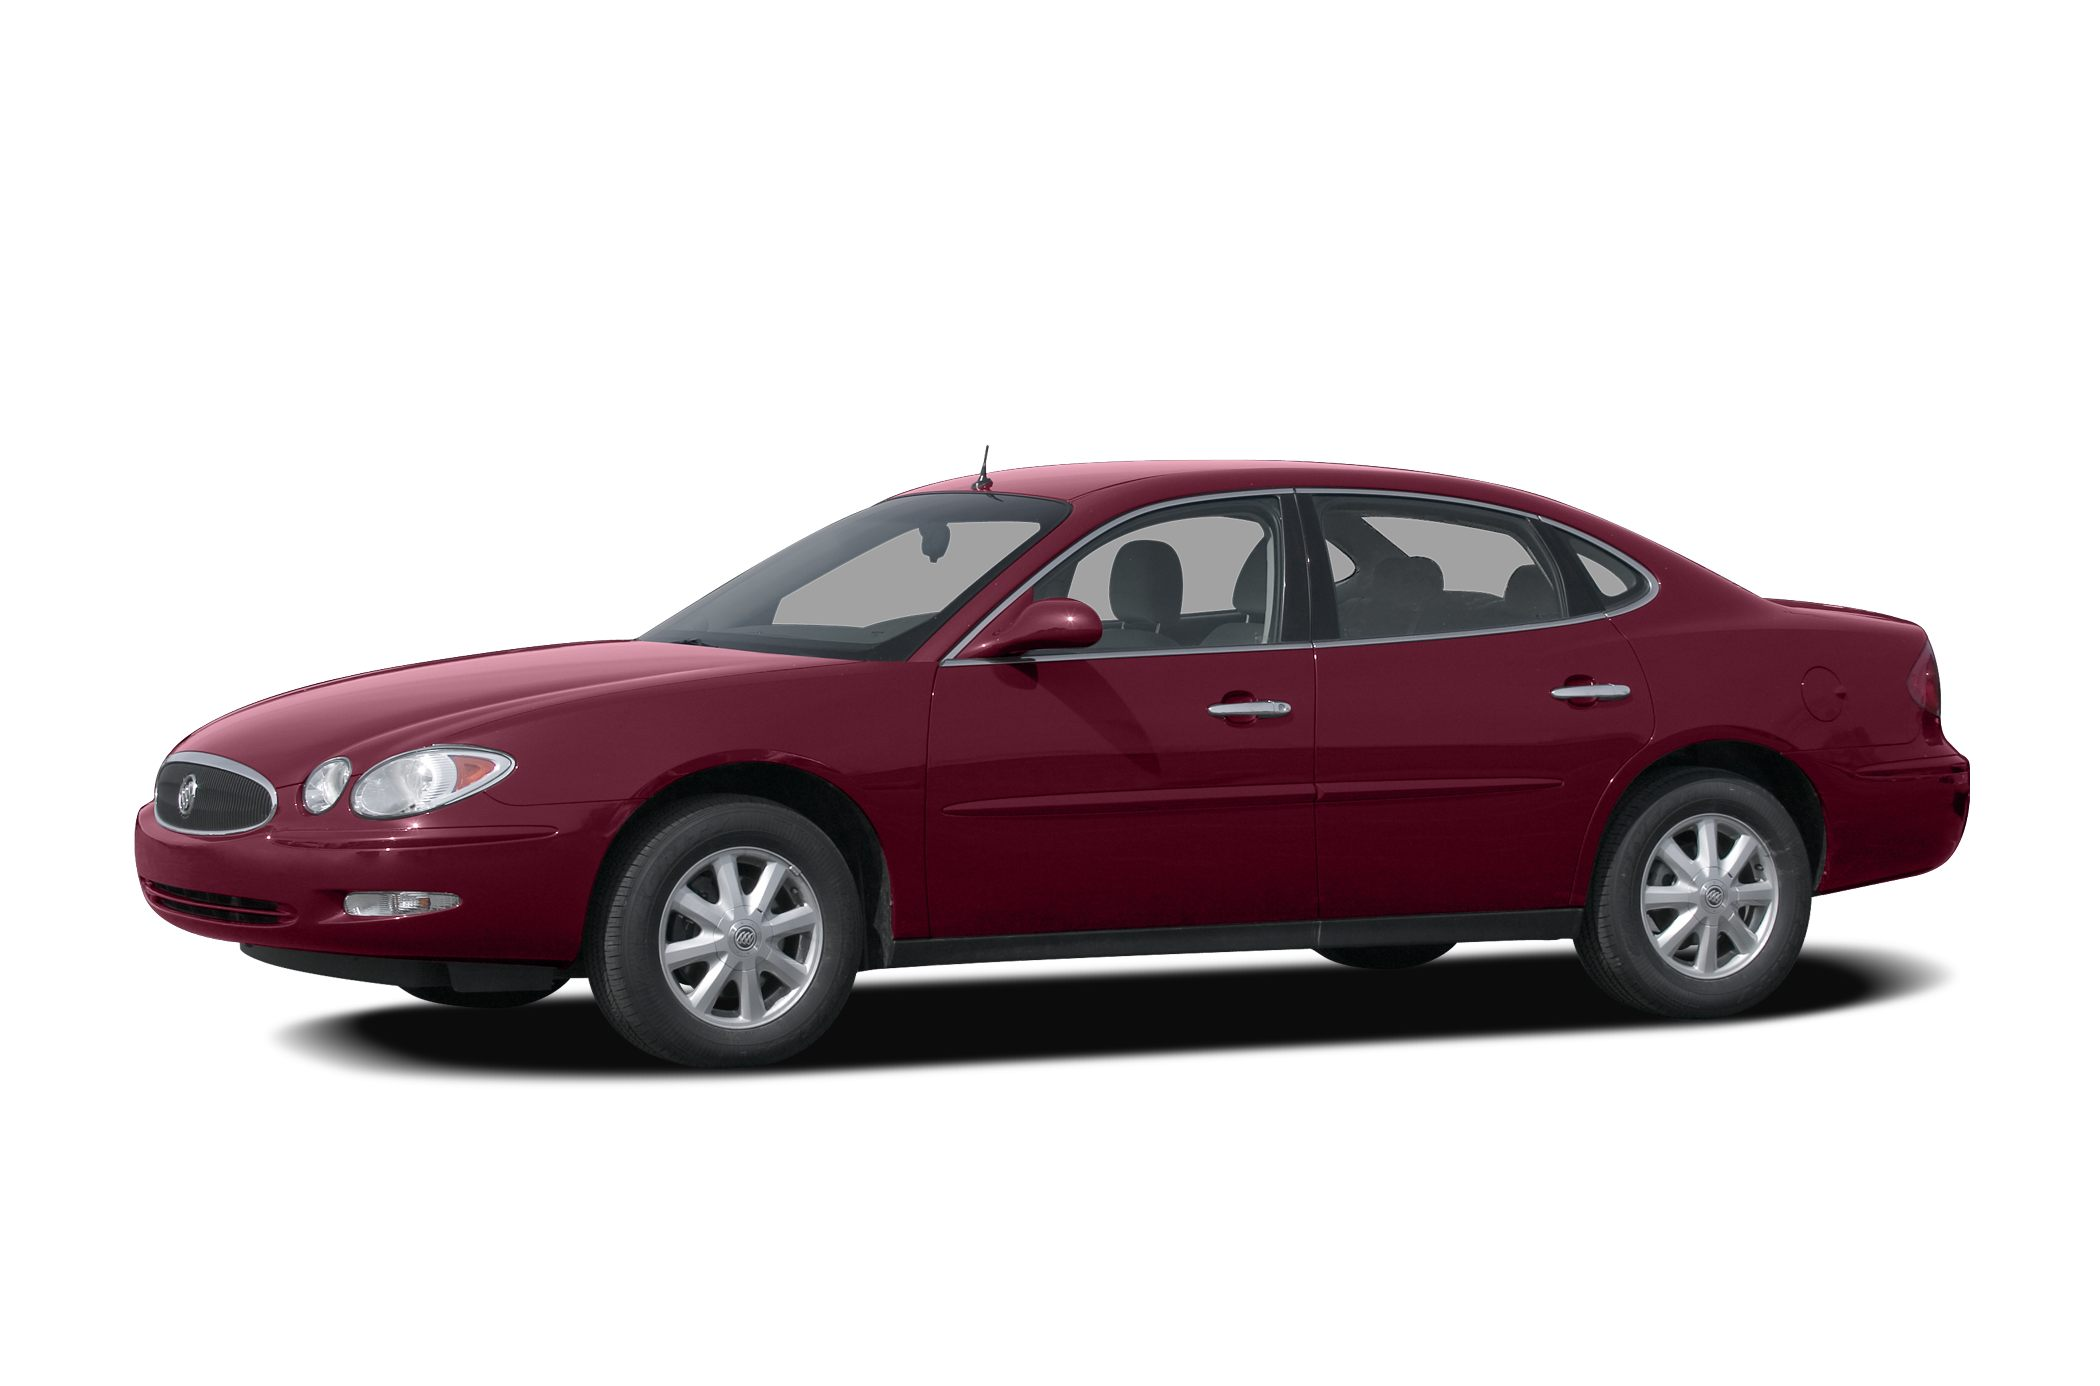 2007 Buick LaCrosse CXL Sedan for sale in Oklahoma City for $6,998 with 157,149 miles